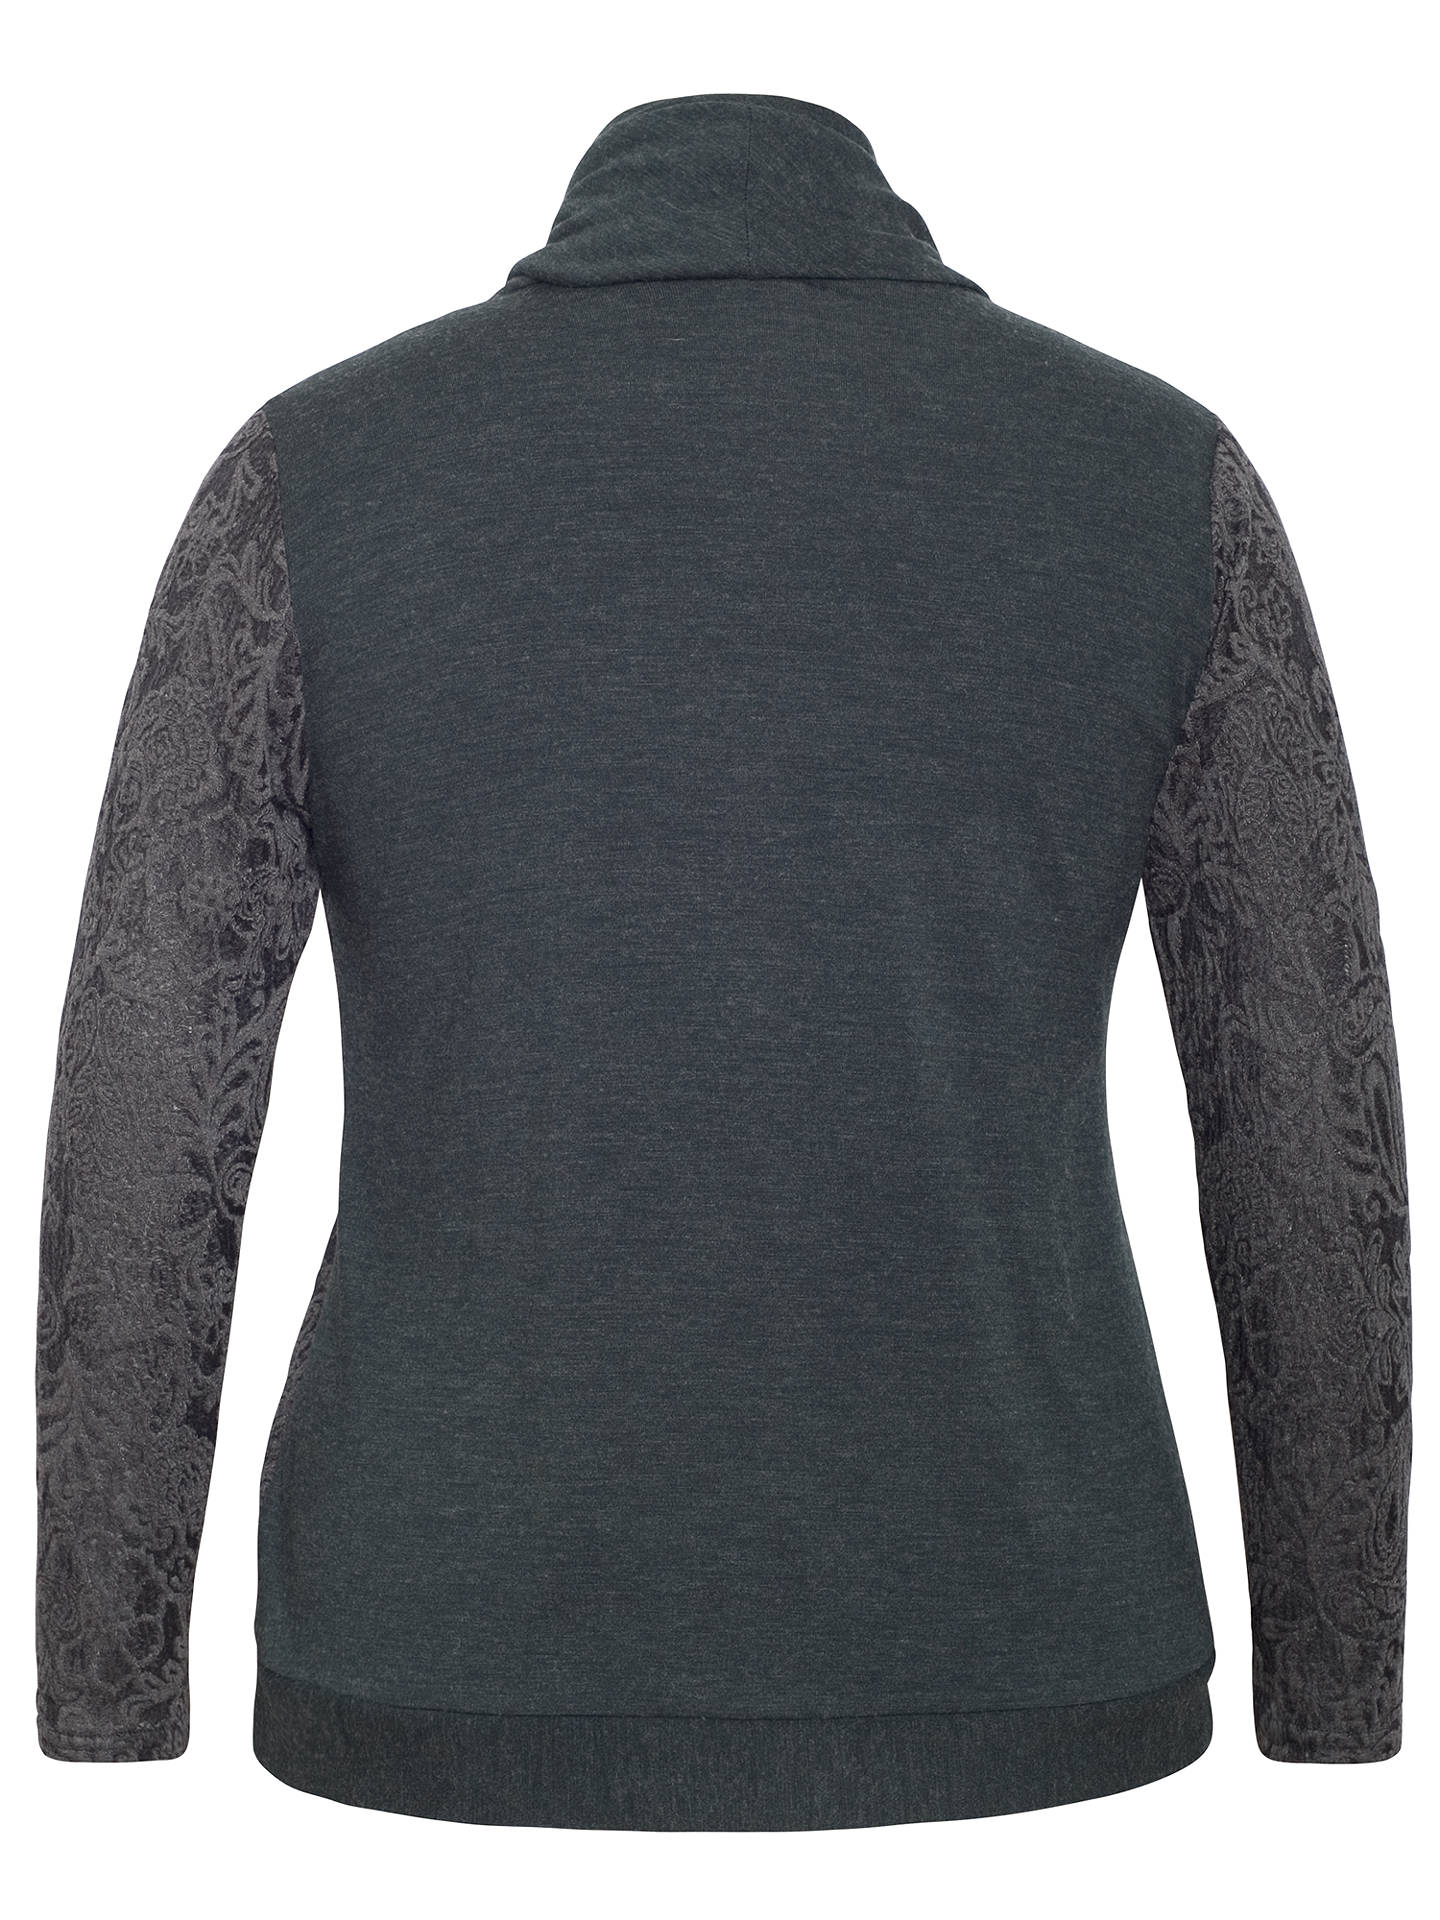 Buy Chesca Baroque Cowl Neck Top, Charcoal, 12-14 Online at johnlewis.com